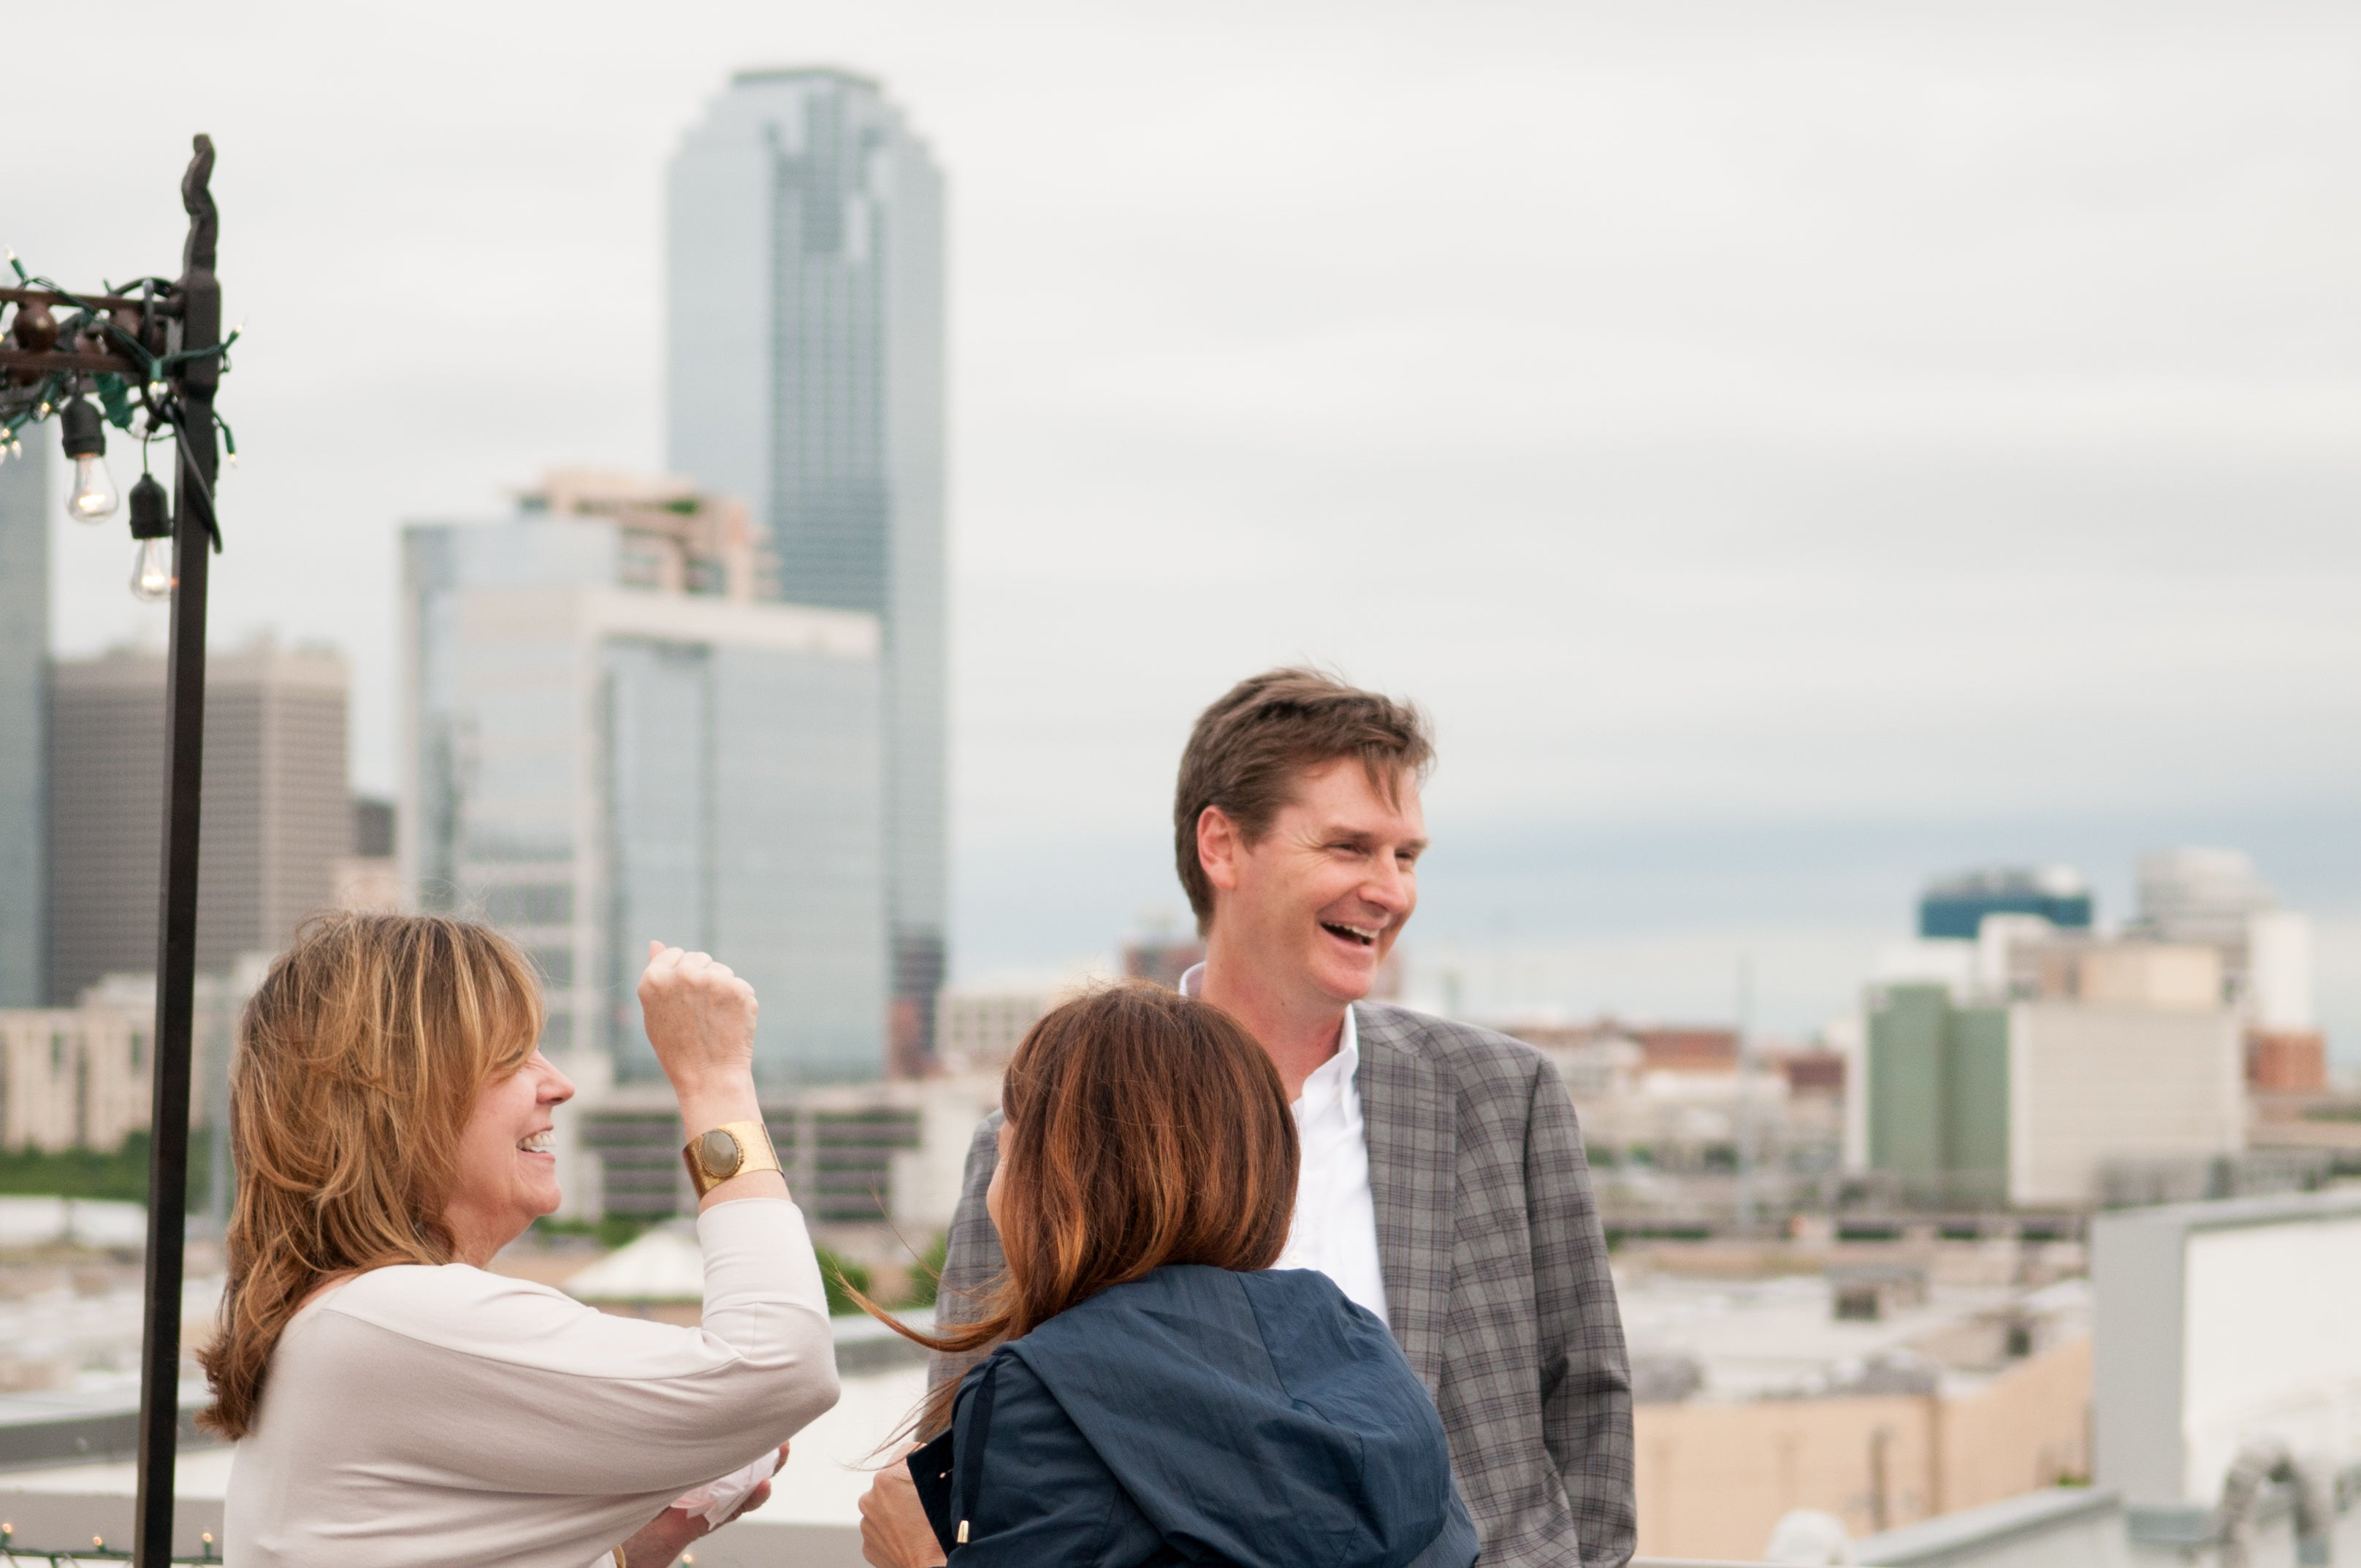 Jason Needleman laughs with guests on the rooftop overlooking the Dallas skyline